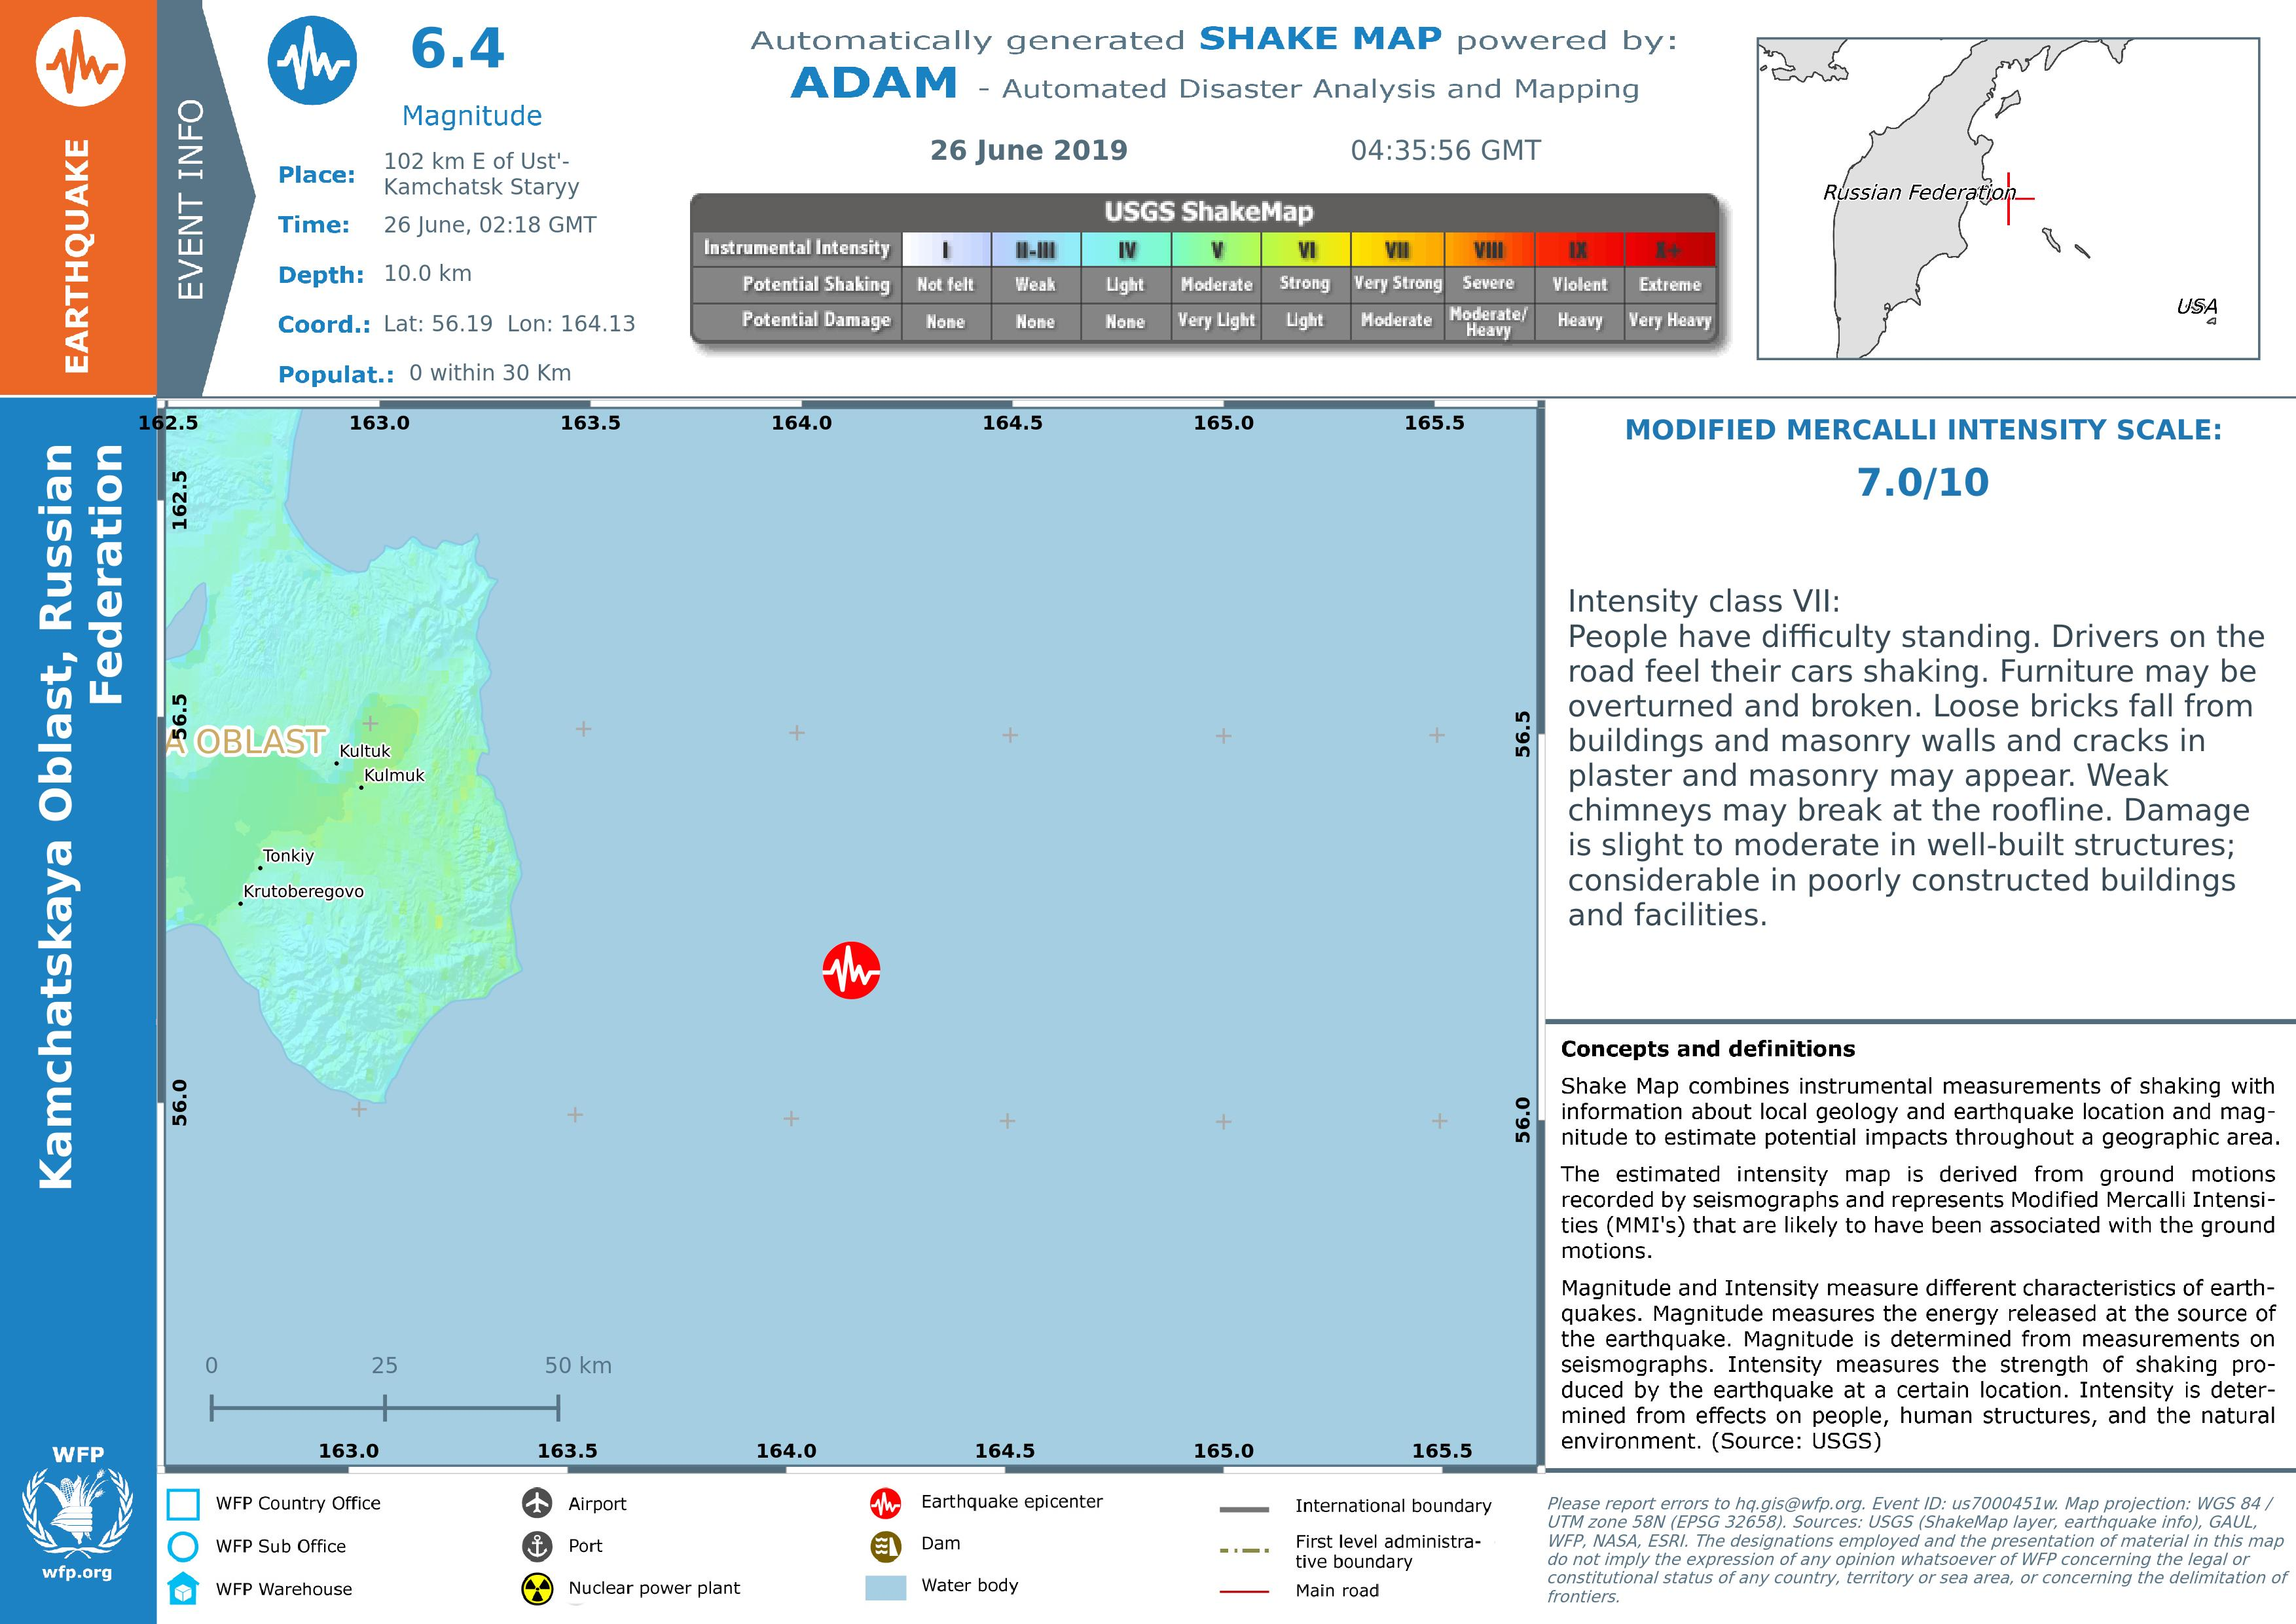 Overall Green Earthquake alert in Russian Federation on 26 ... on russia japan map, russia flood map, russia pollution map, russia weather map, russia volcano map, russia environment map, russia 1941 map, russia airport map, russia wildfires map, russia meteor map,